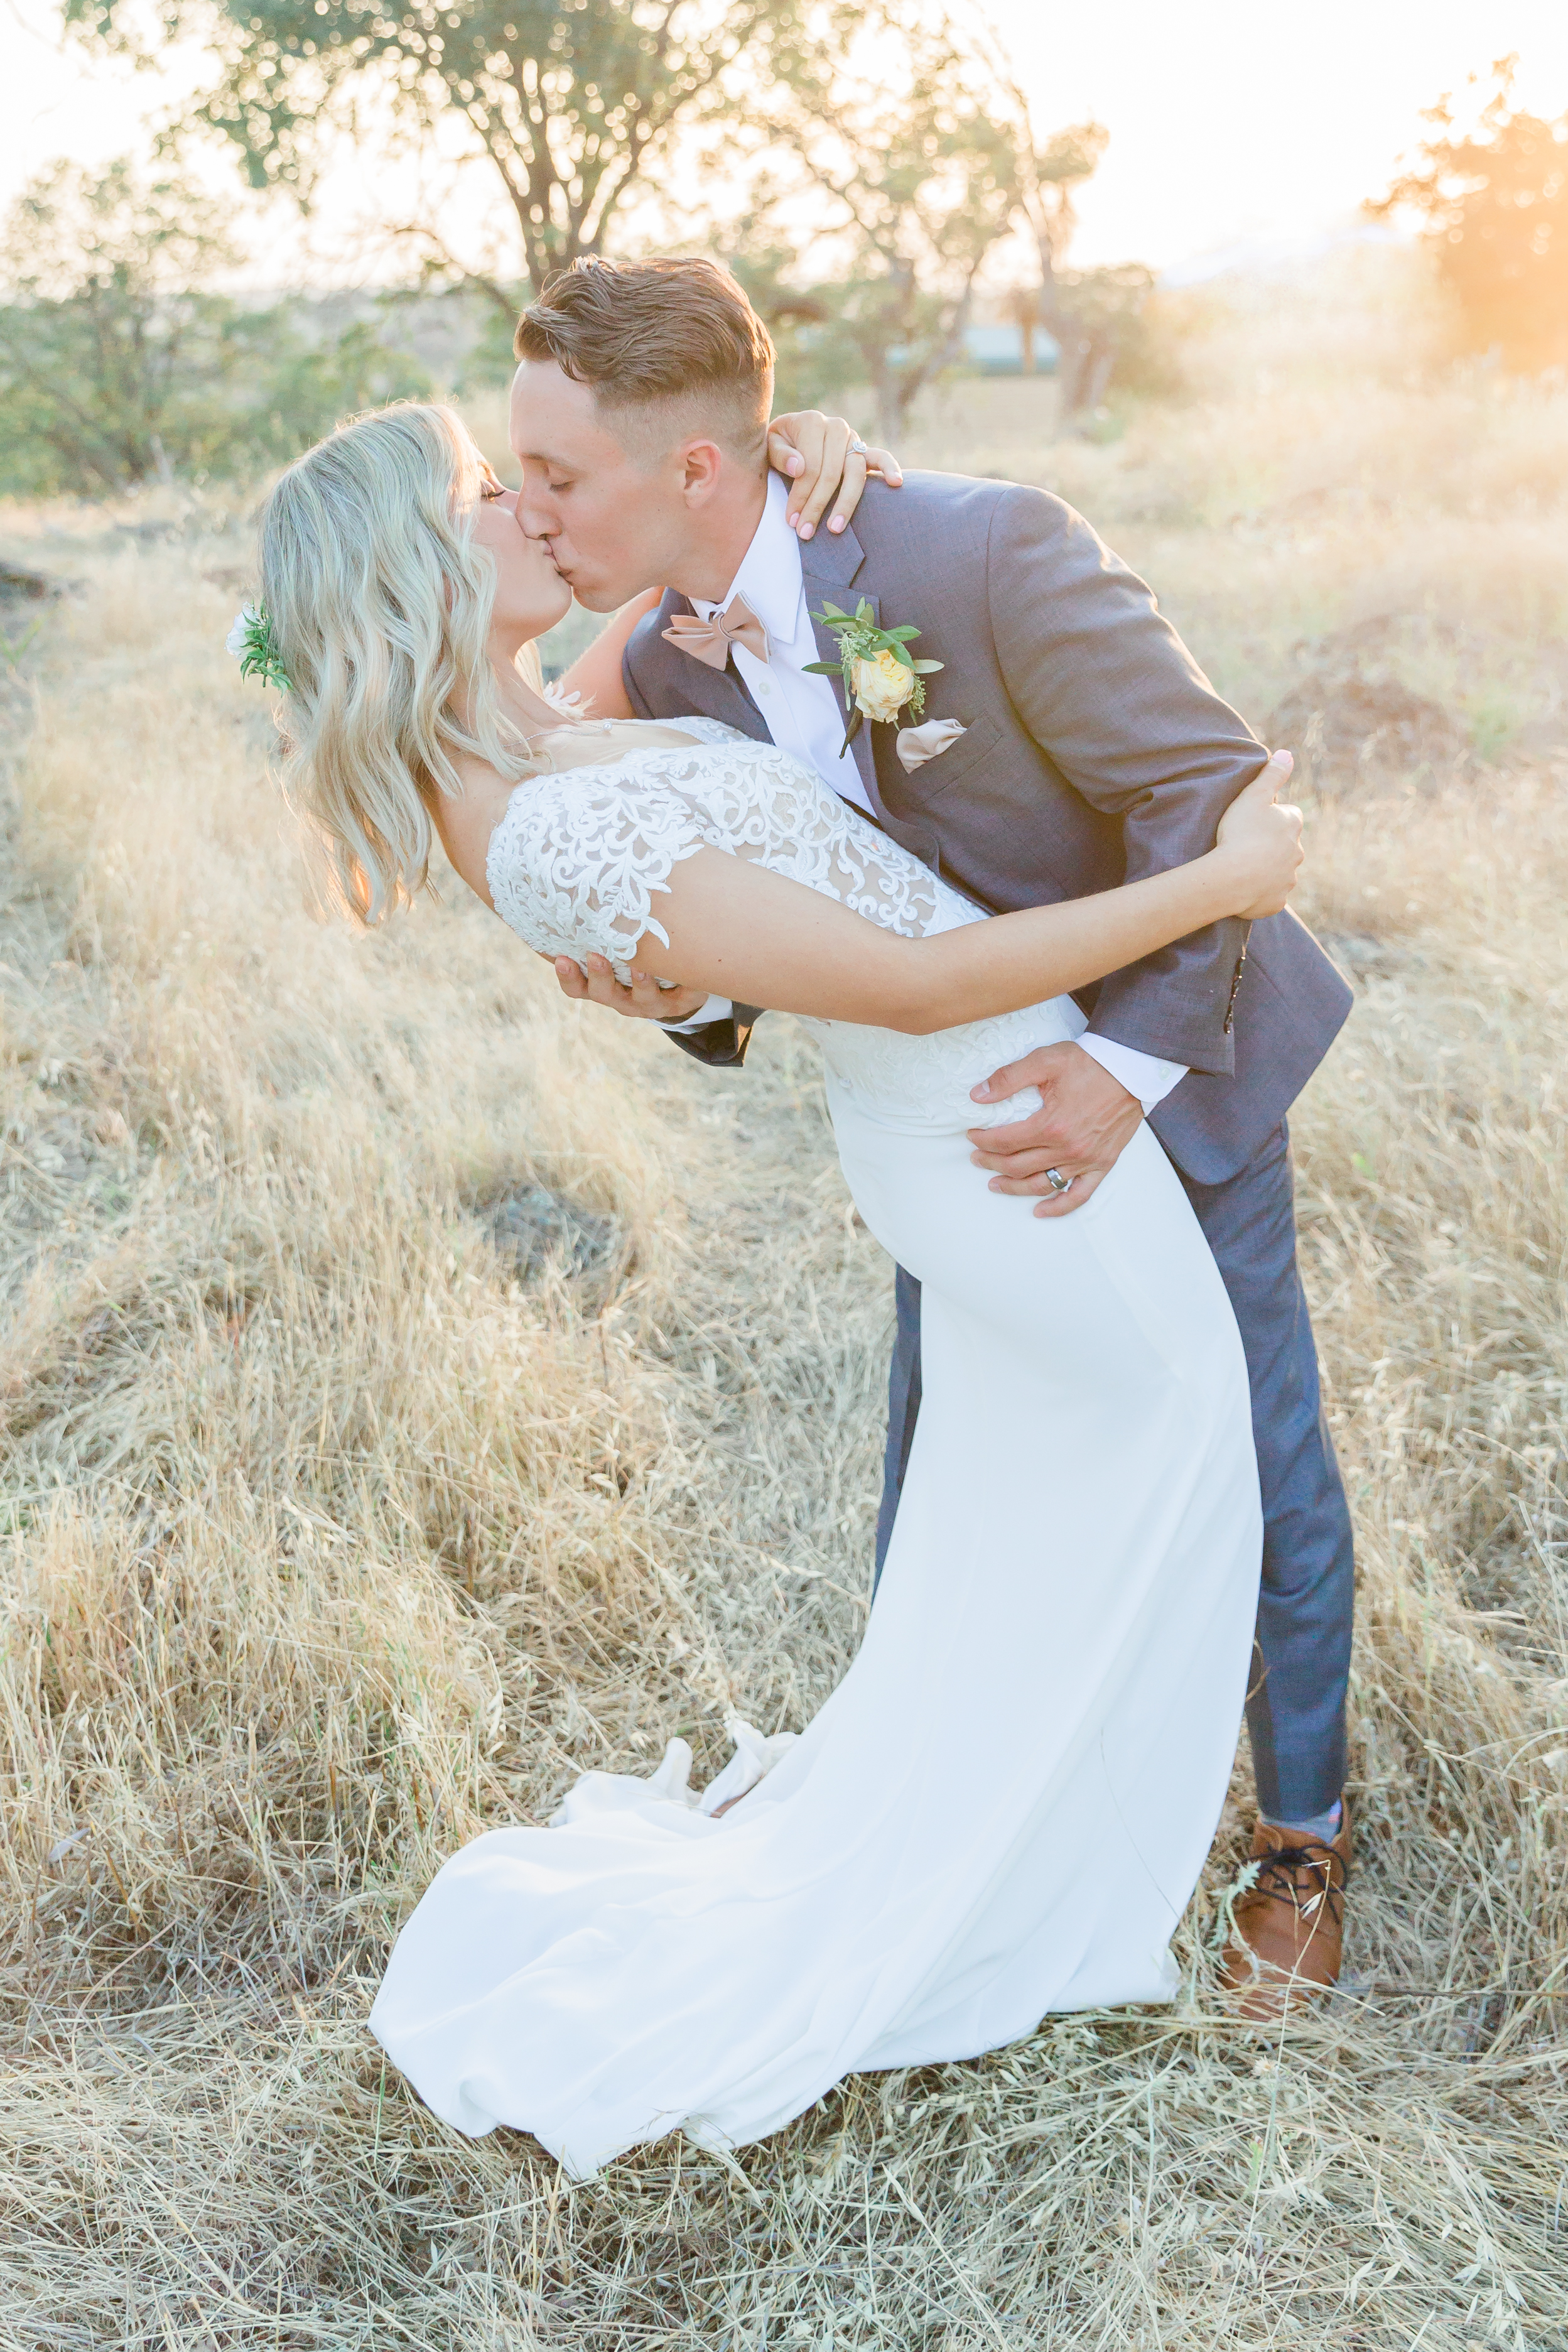 Kaitlynn and Colby - Married - Sneaks - Lauren Alisse Photography-103.jpg